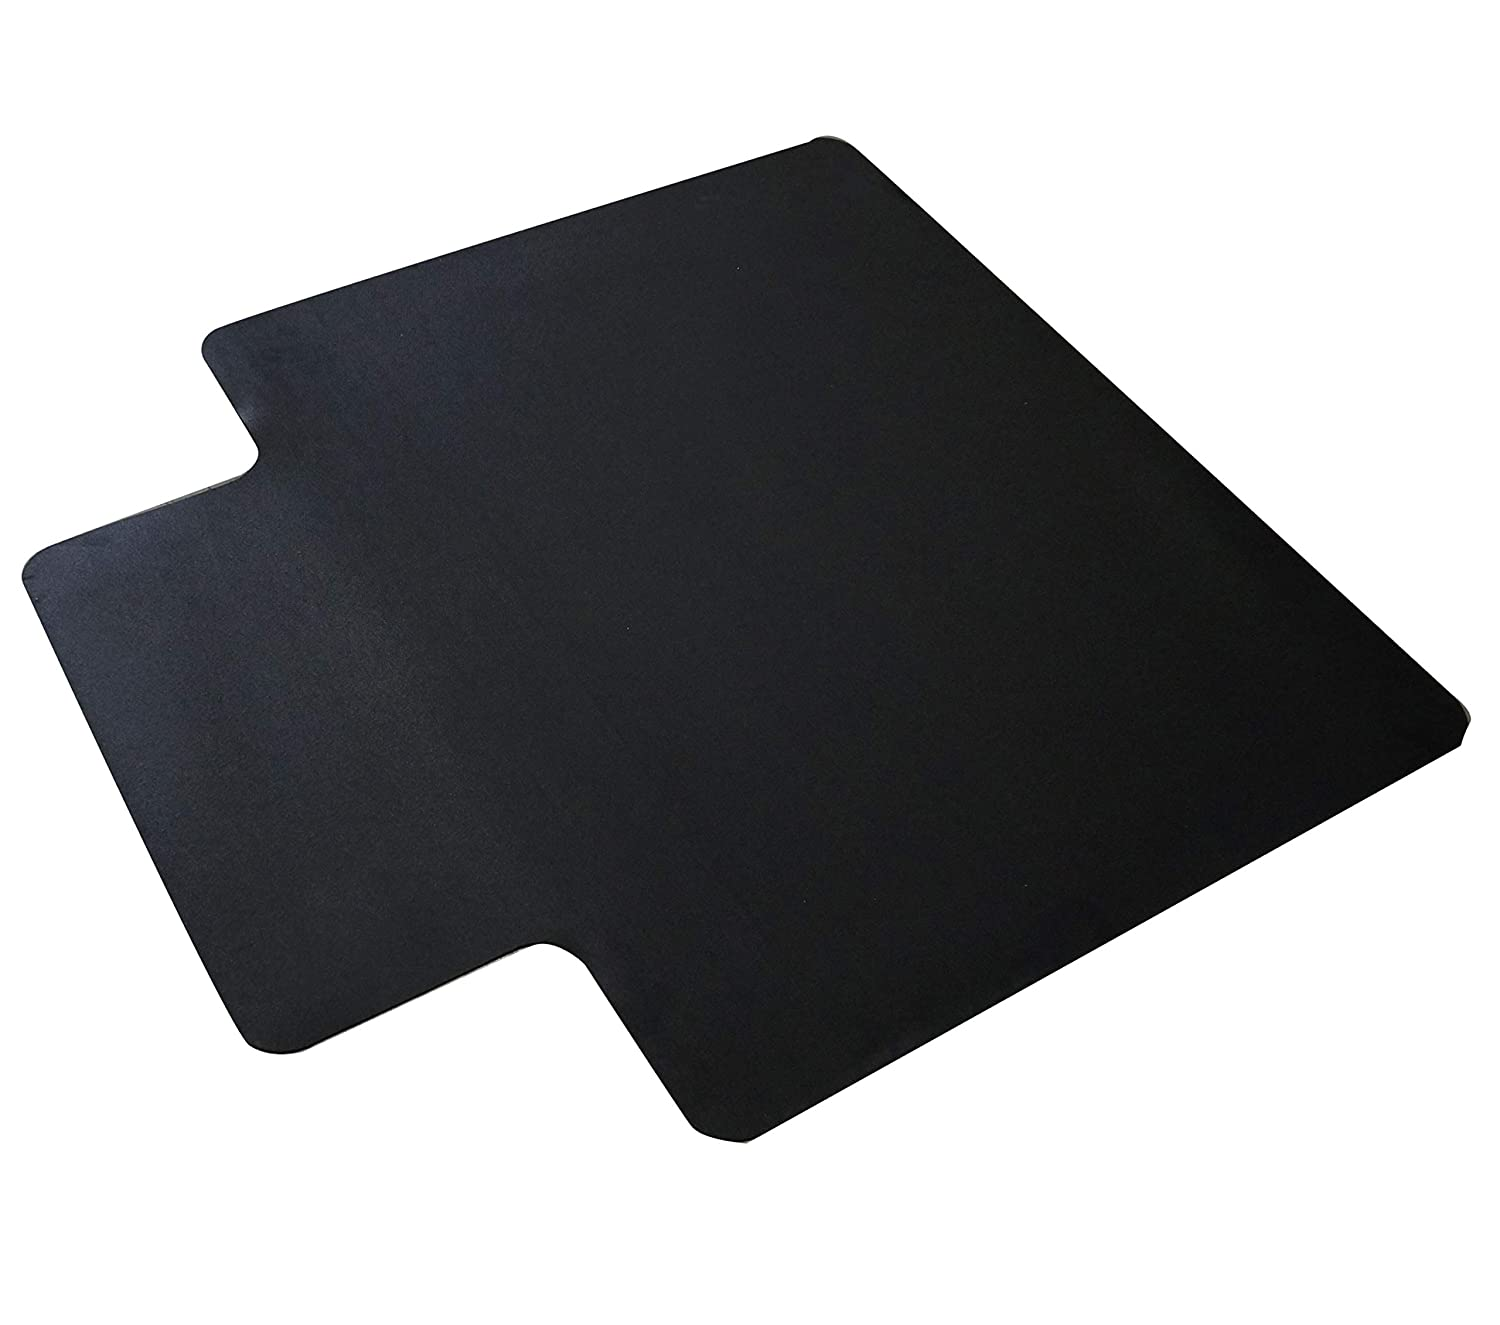 Grounding Chair Mat - Conductive Earthing Mat for The Desk